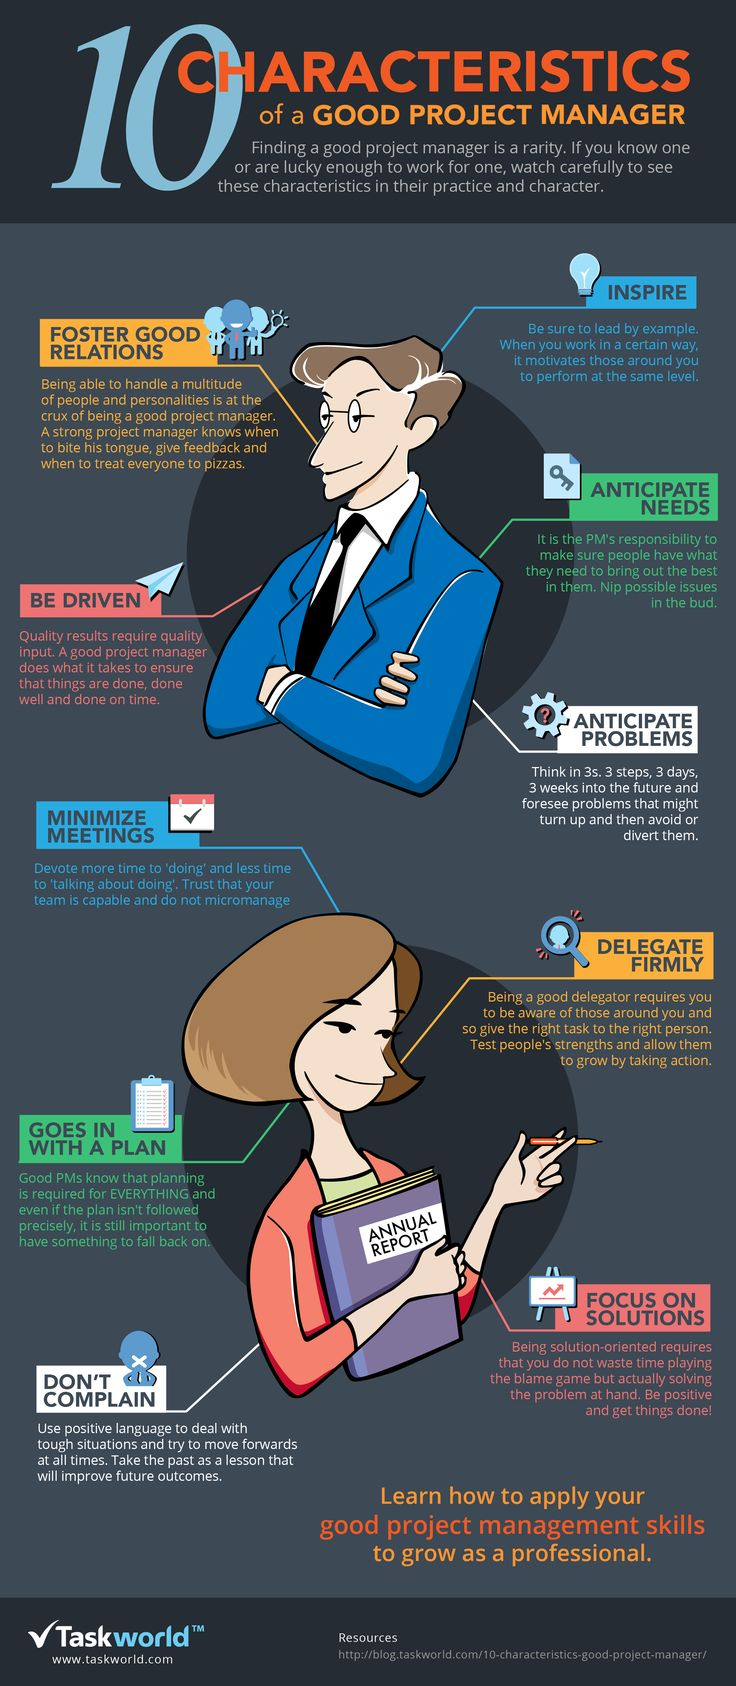 10 Characteristics of A Good Project Manager #infographic #ProjectManager